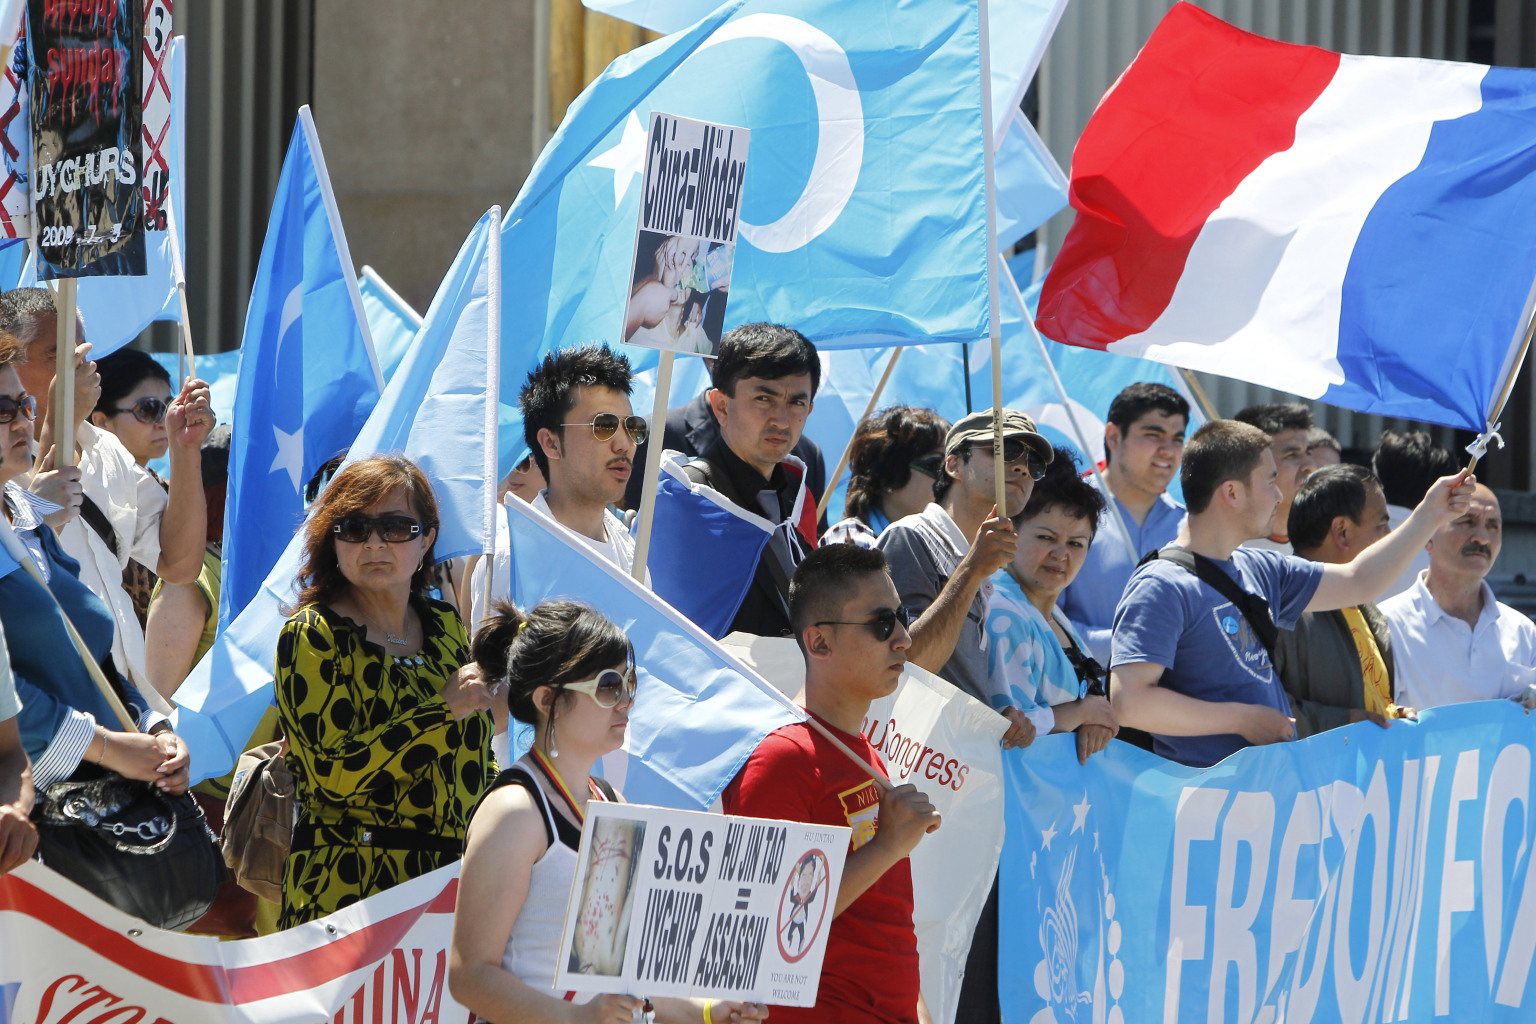 FP: China Demands Personal Info From French Uyghurs